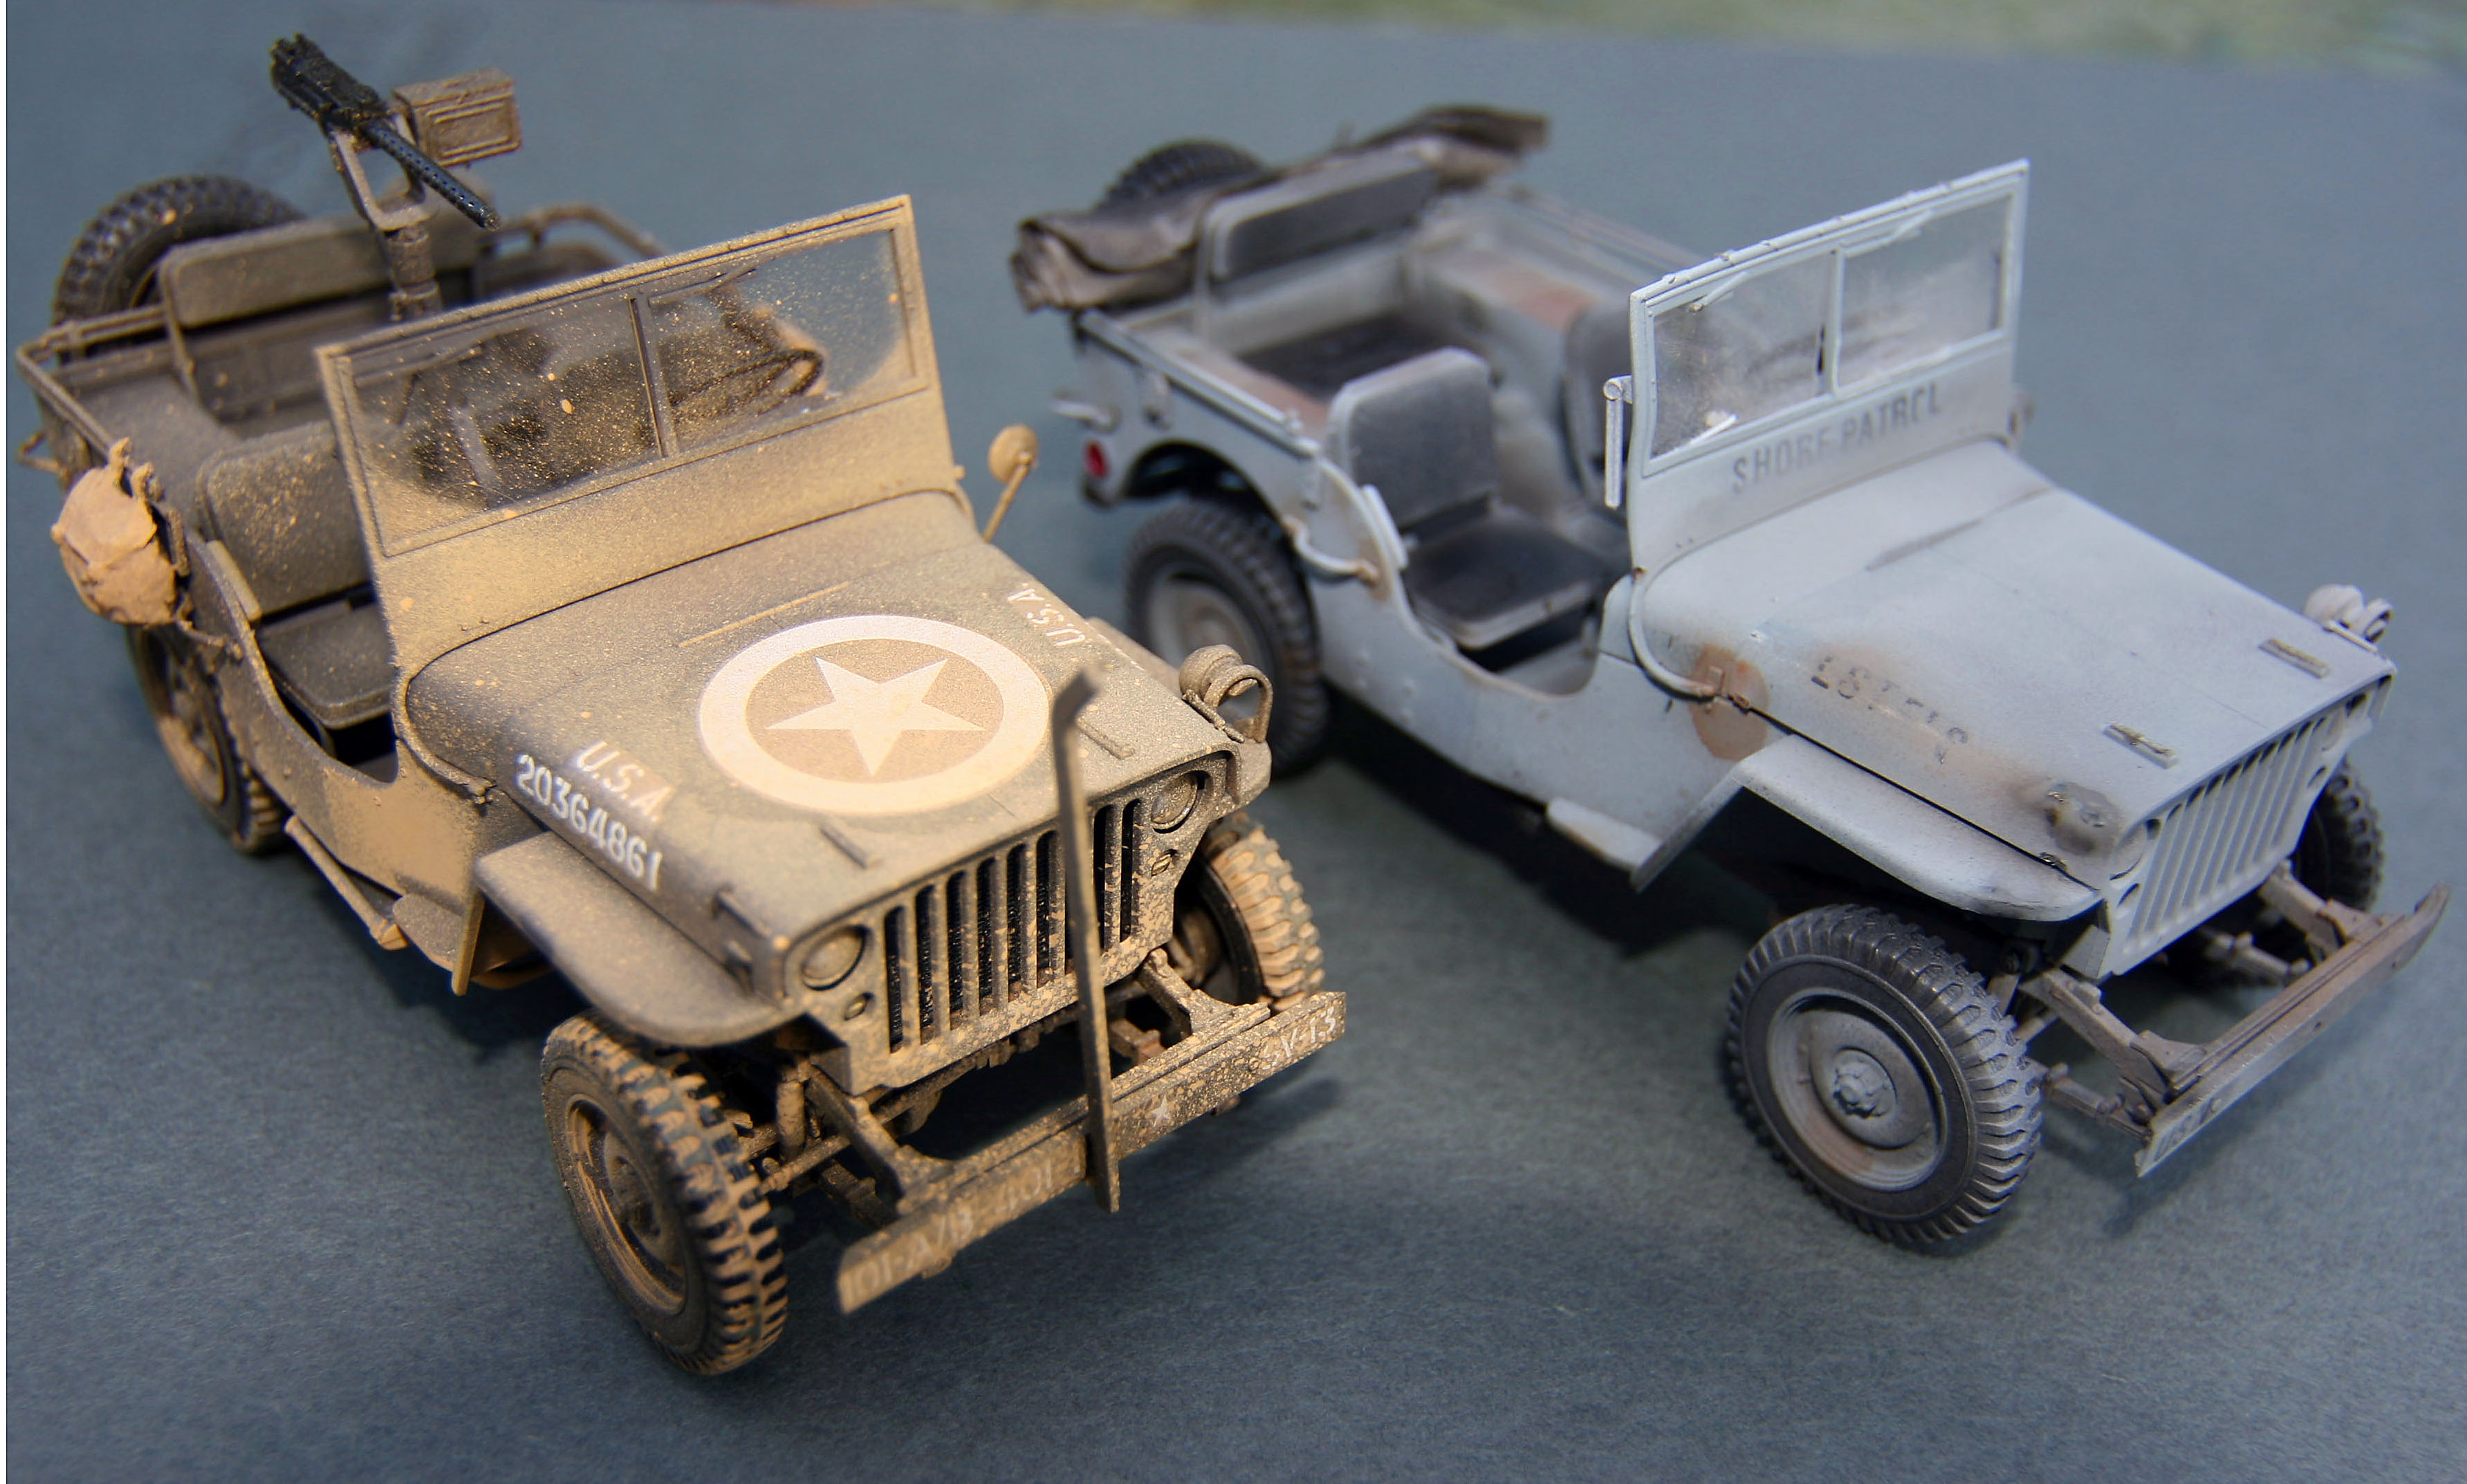 Hasegawa 1/24 scale Willys Jeeps - FineScale Modeler